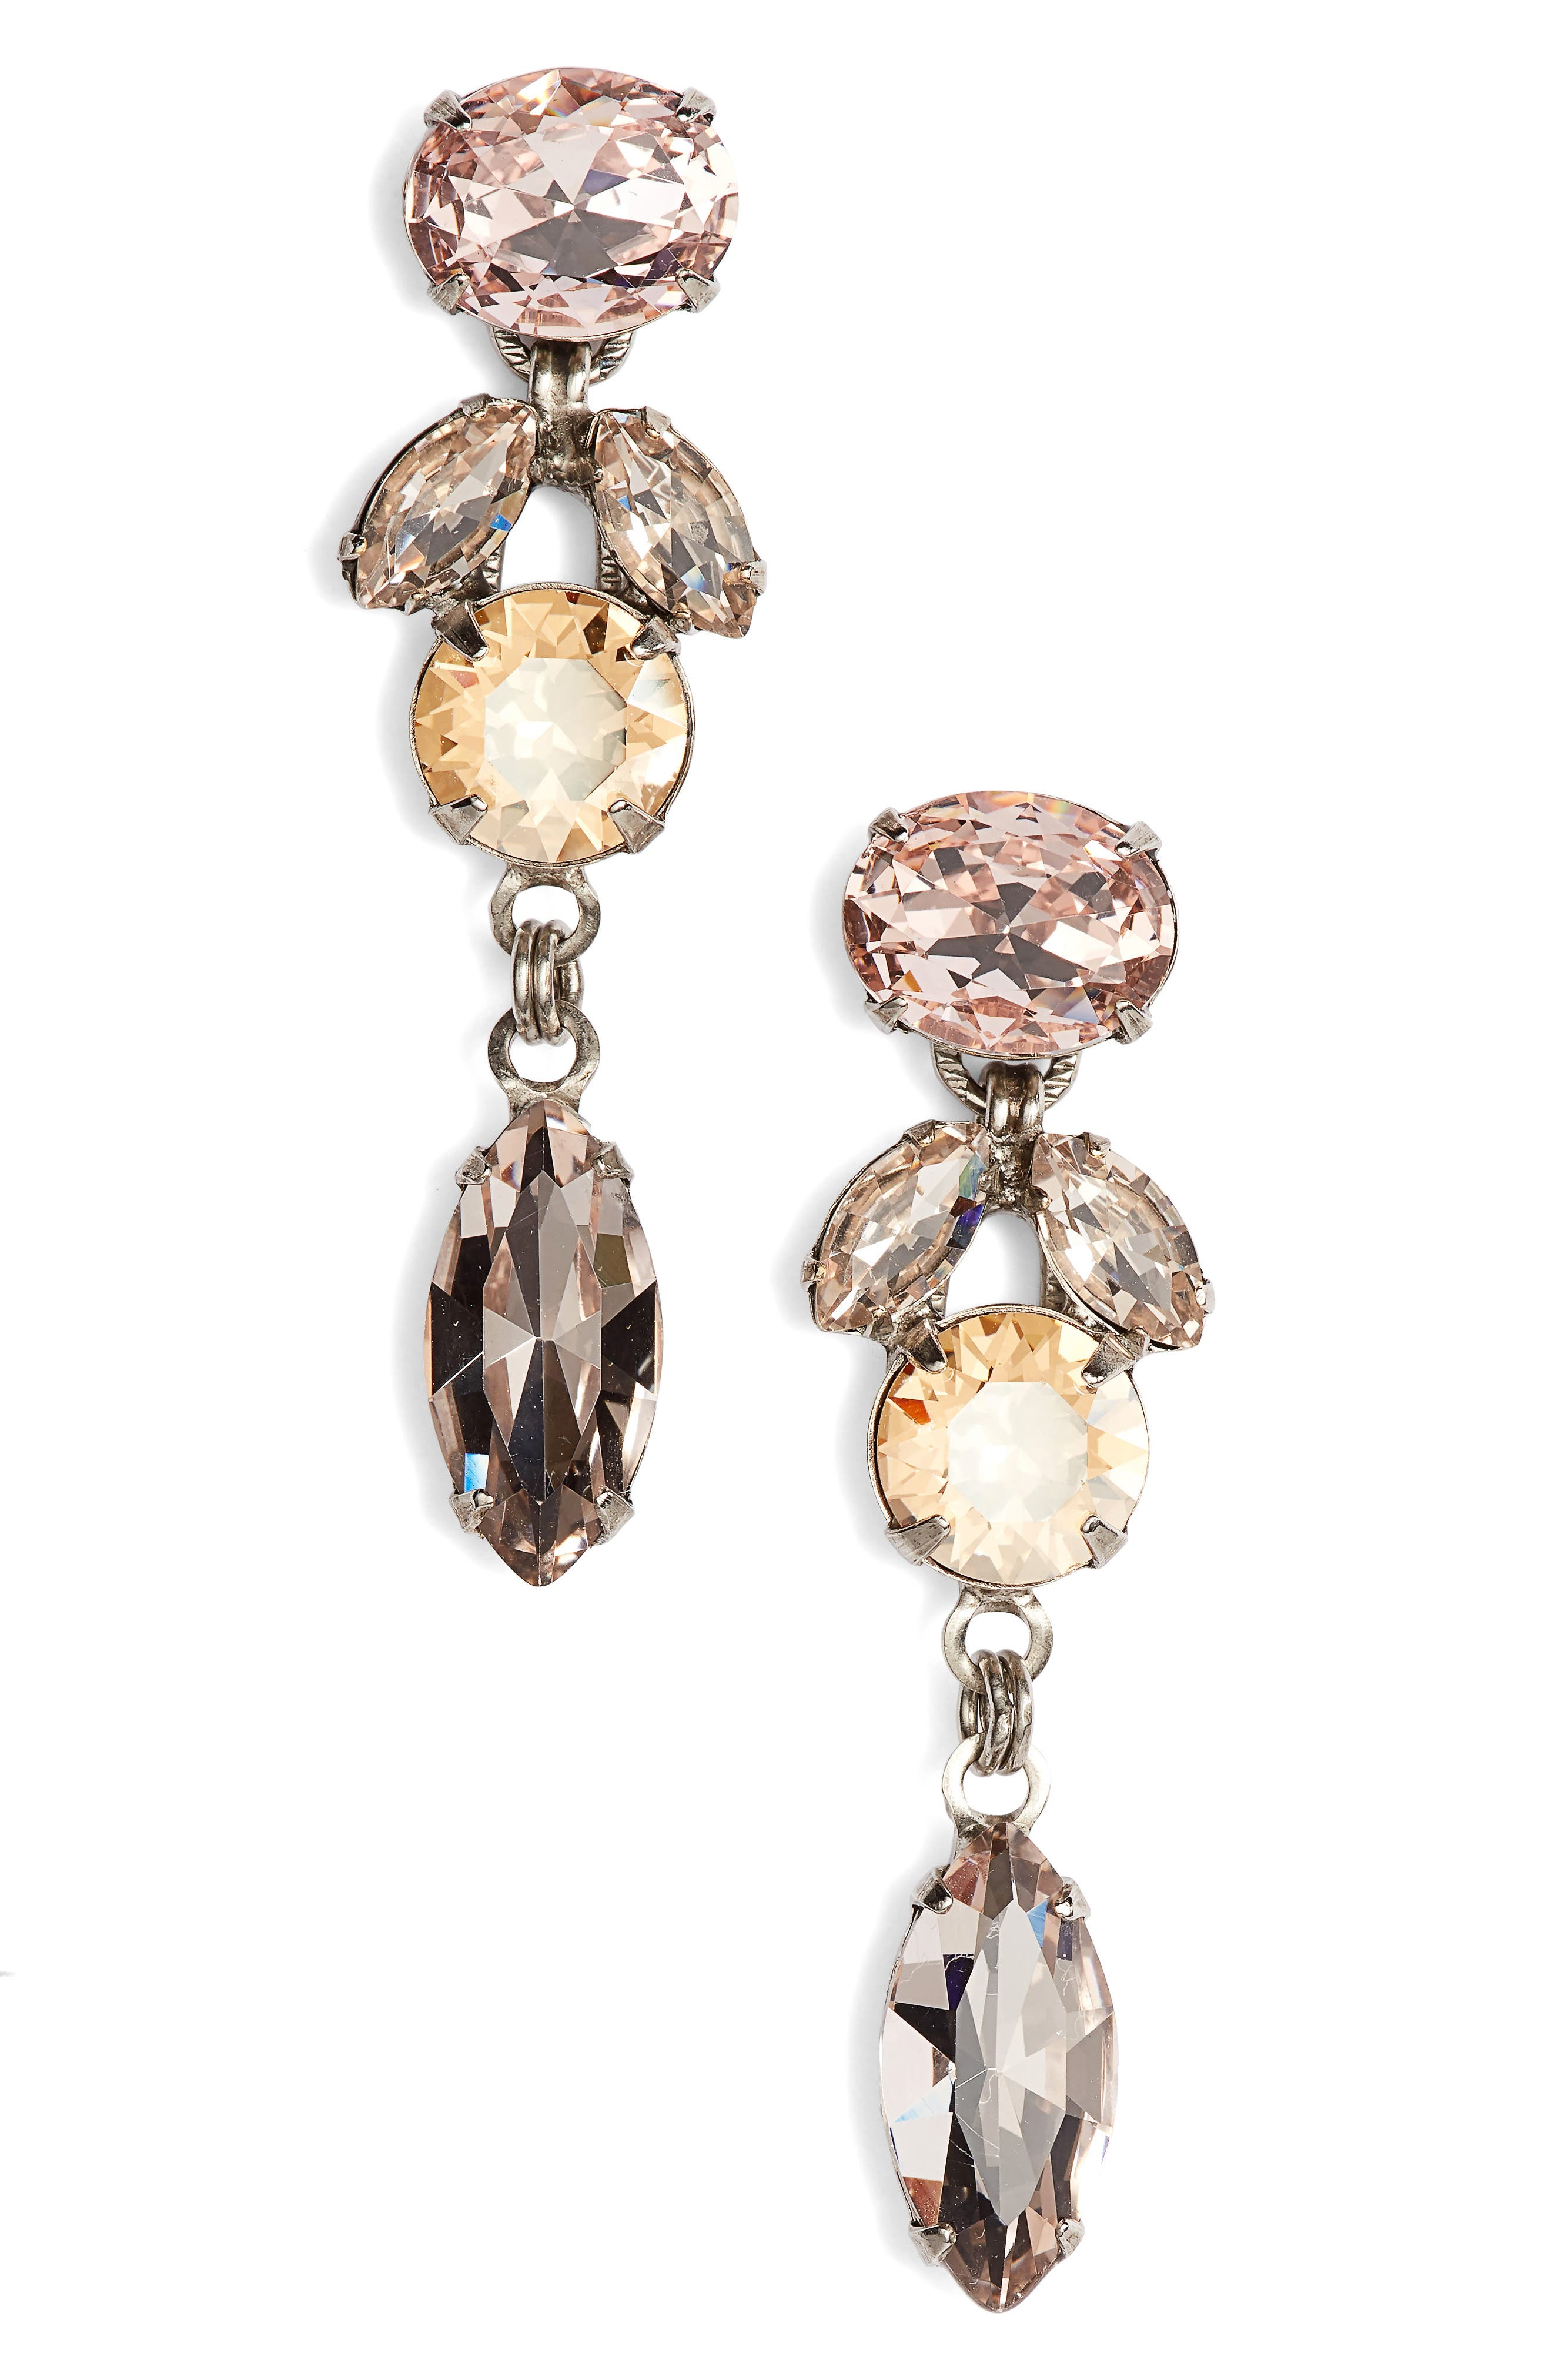 Sparkling Siren Crystal Earrings,                             Main thumbnail 1, color,                             PINK